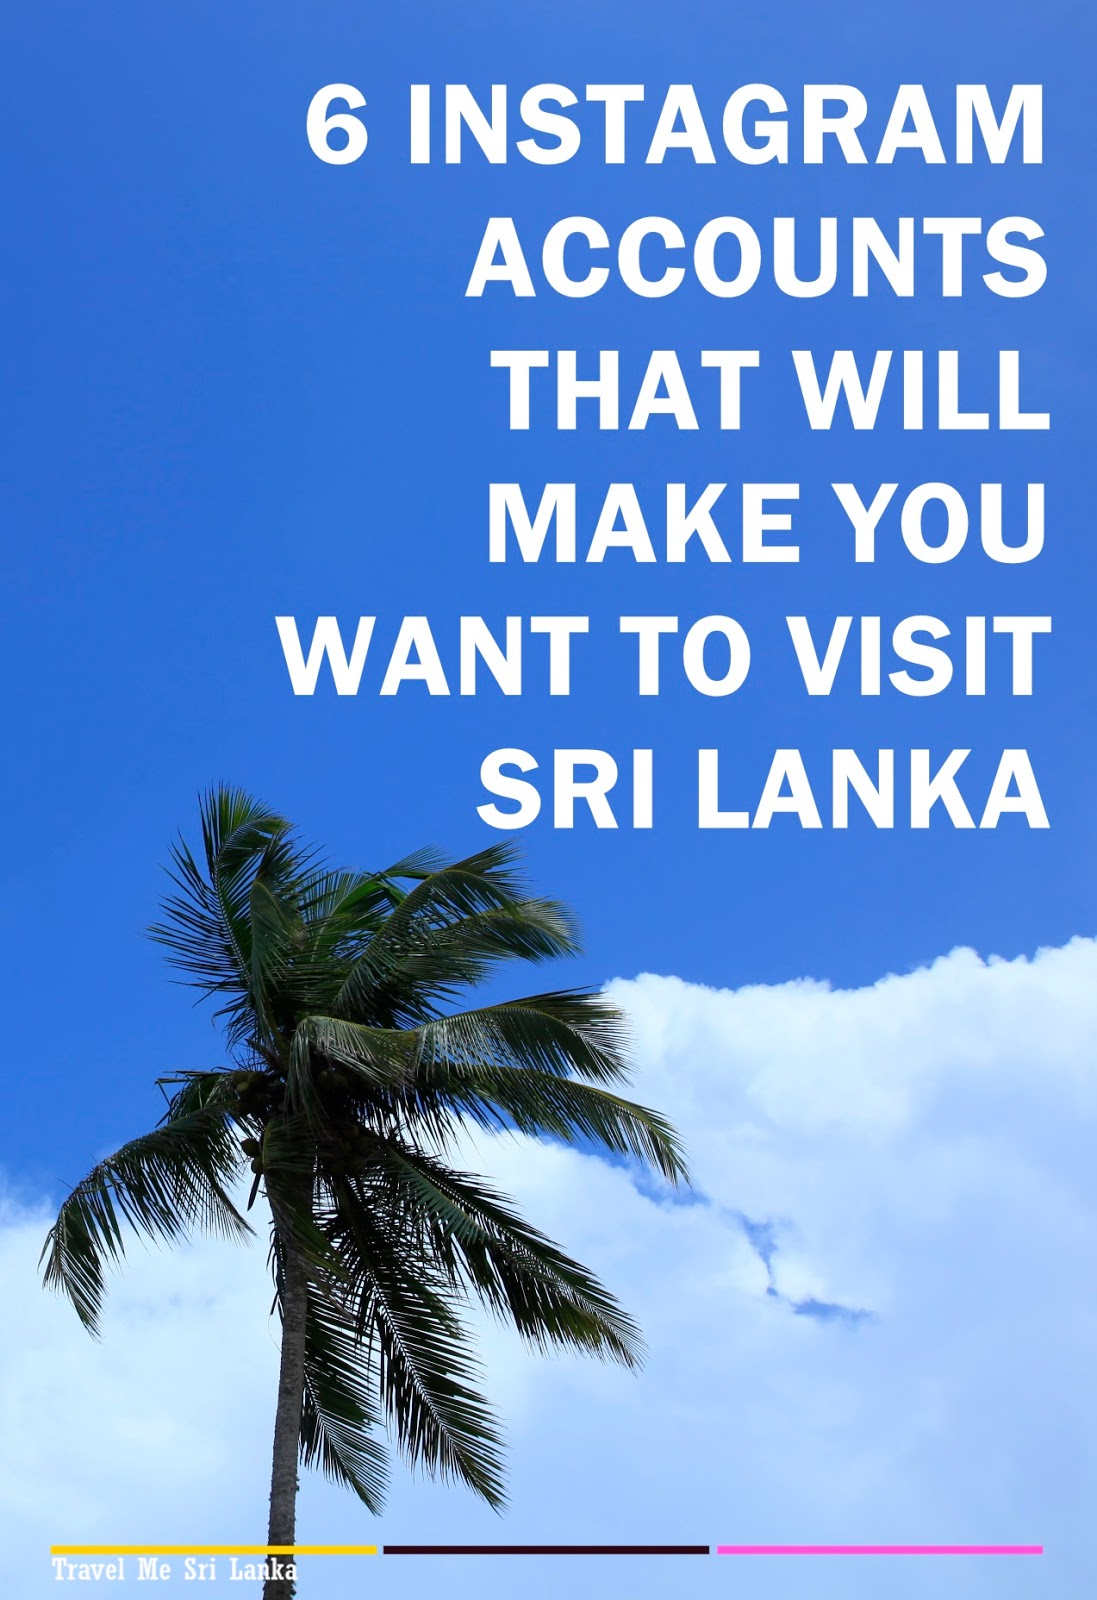 6 Instagram accounts that will make you want to visit Sri Lanka